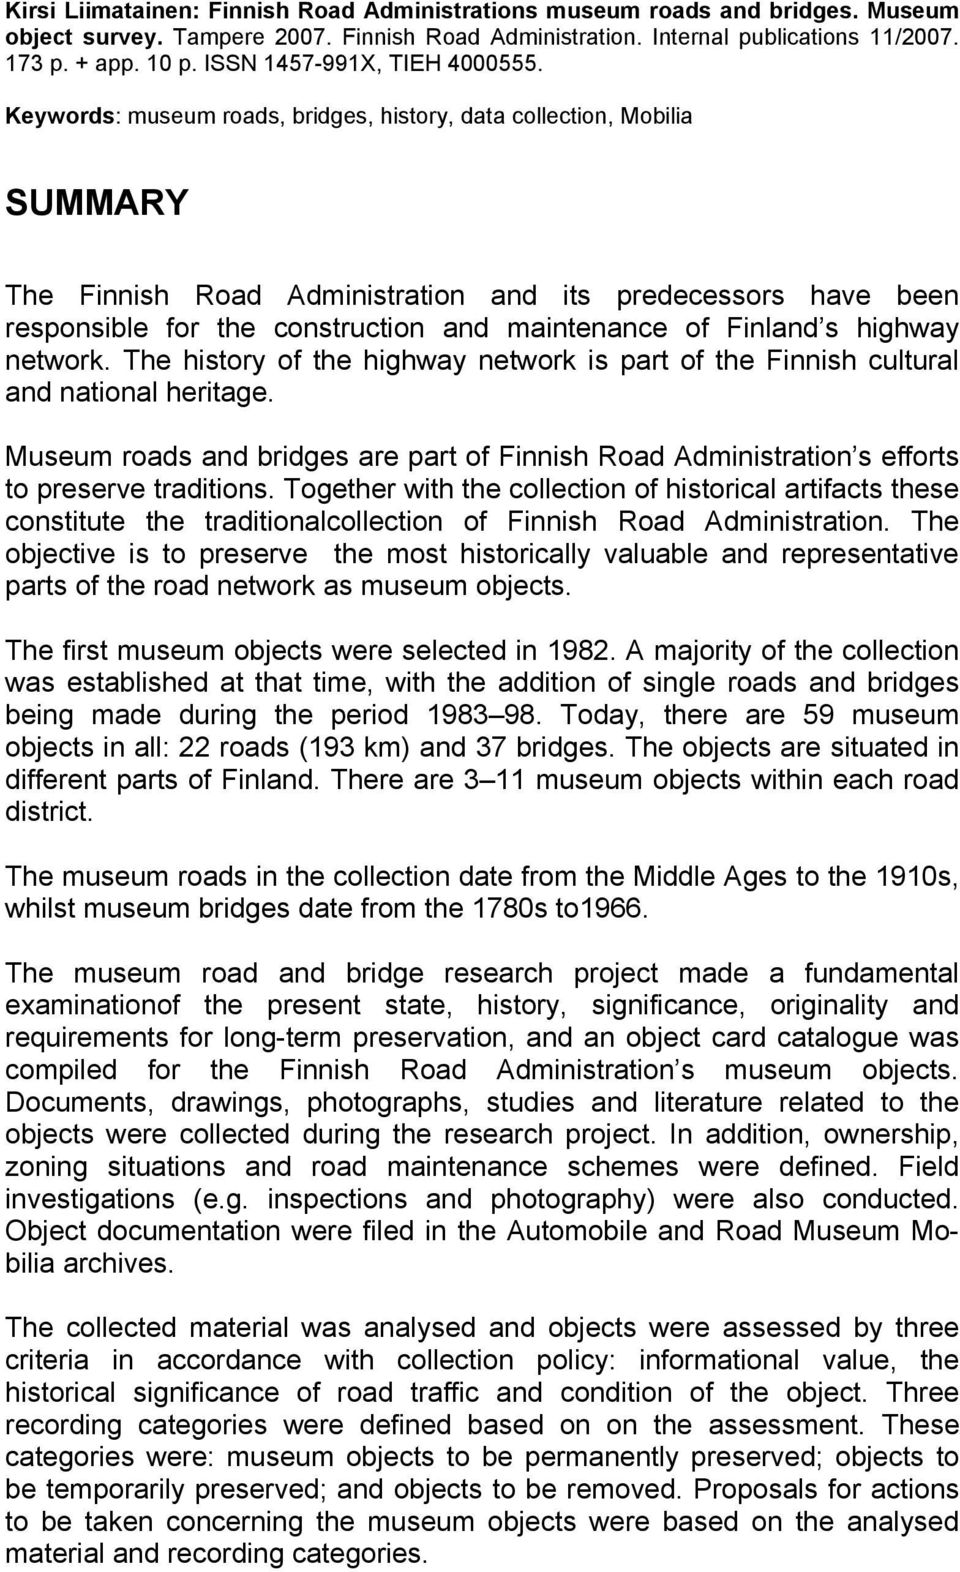 Keywords: museum roads, bridges, history, data collection, Mobilia SUMMARY The Finnish Road Administration and its predecessors have been responsible for the construction and maintenance of Finland s